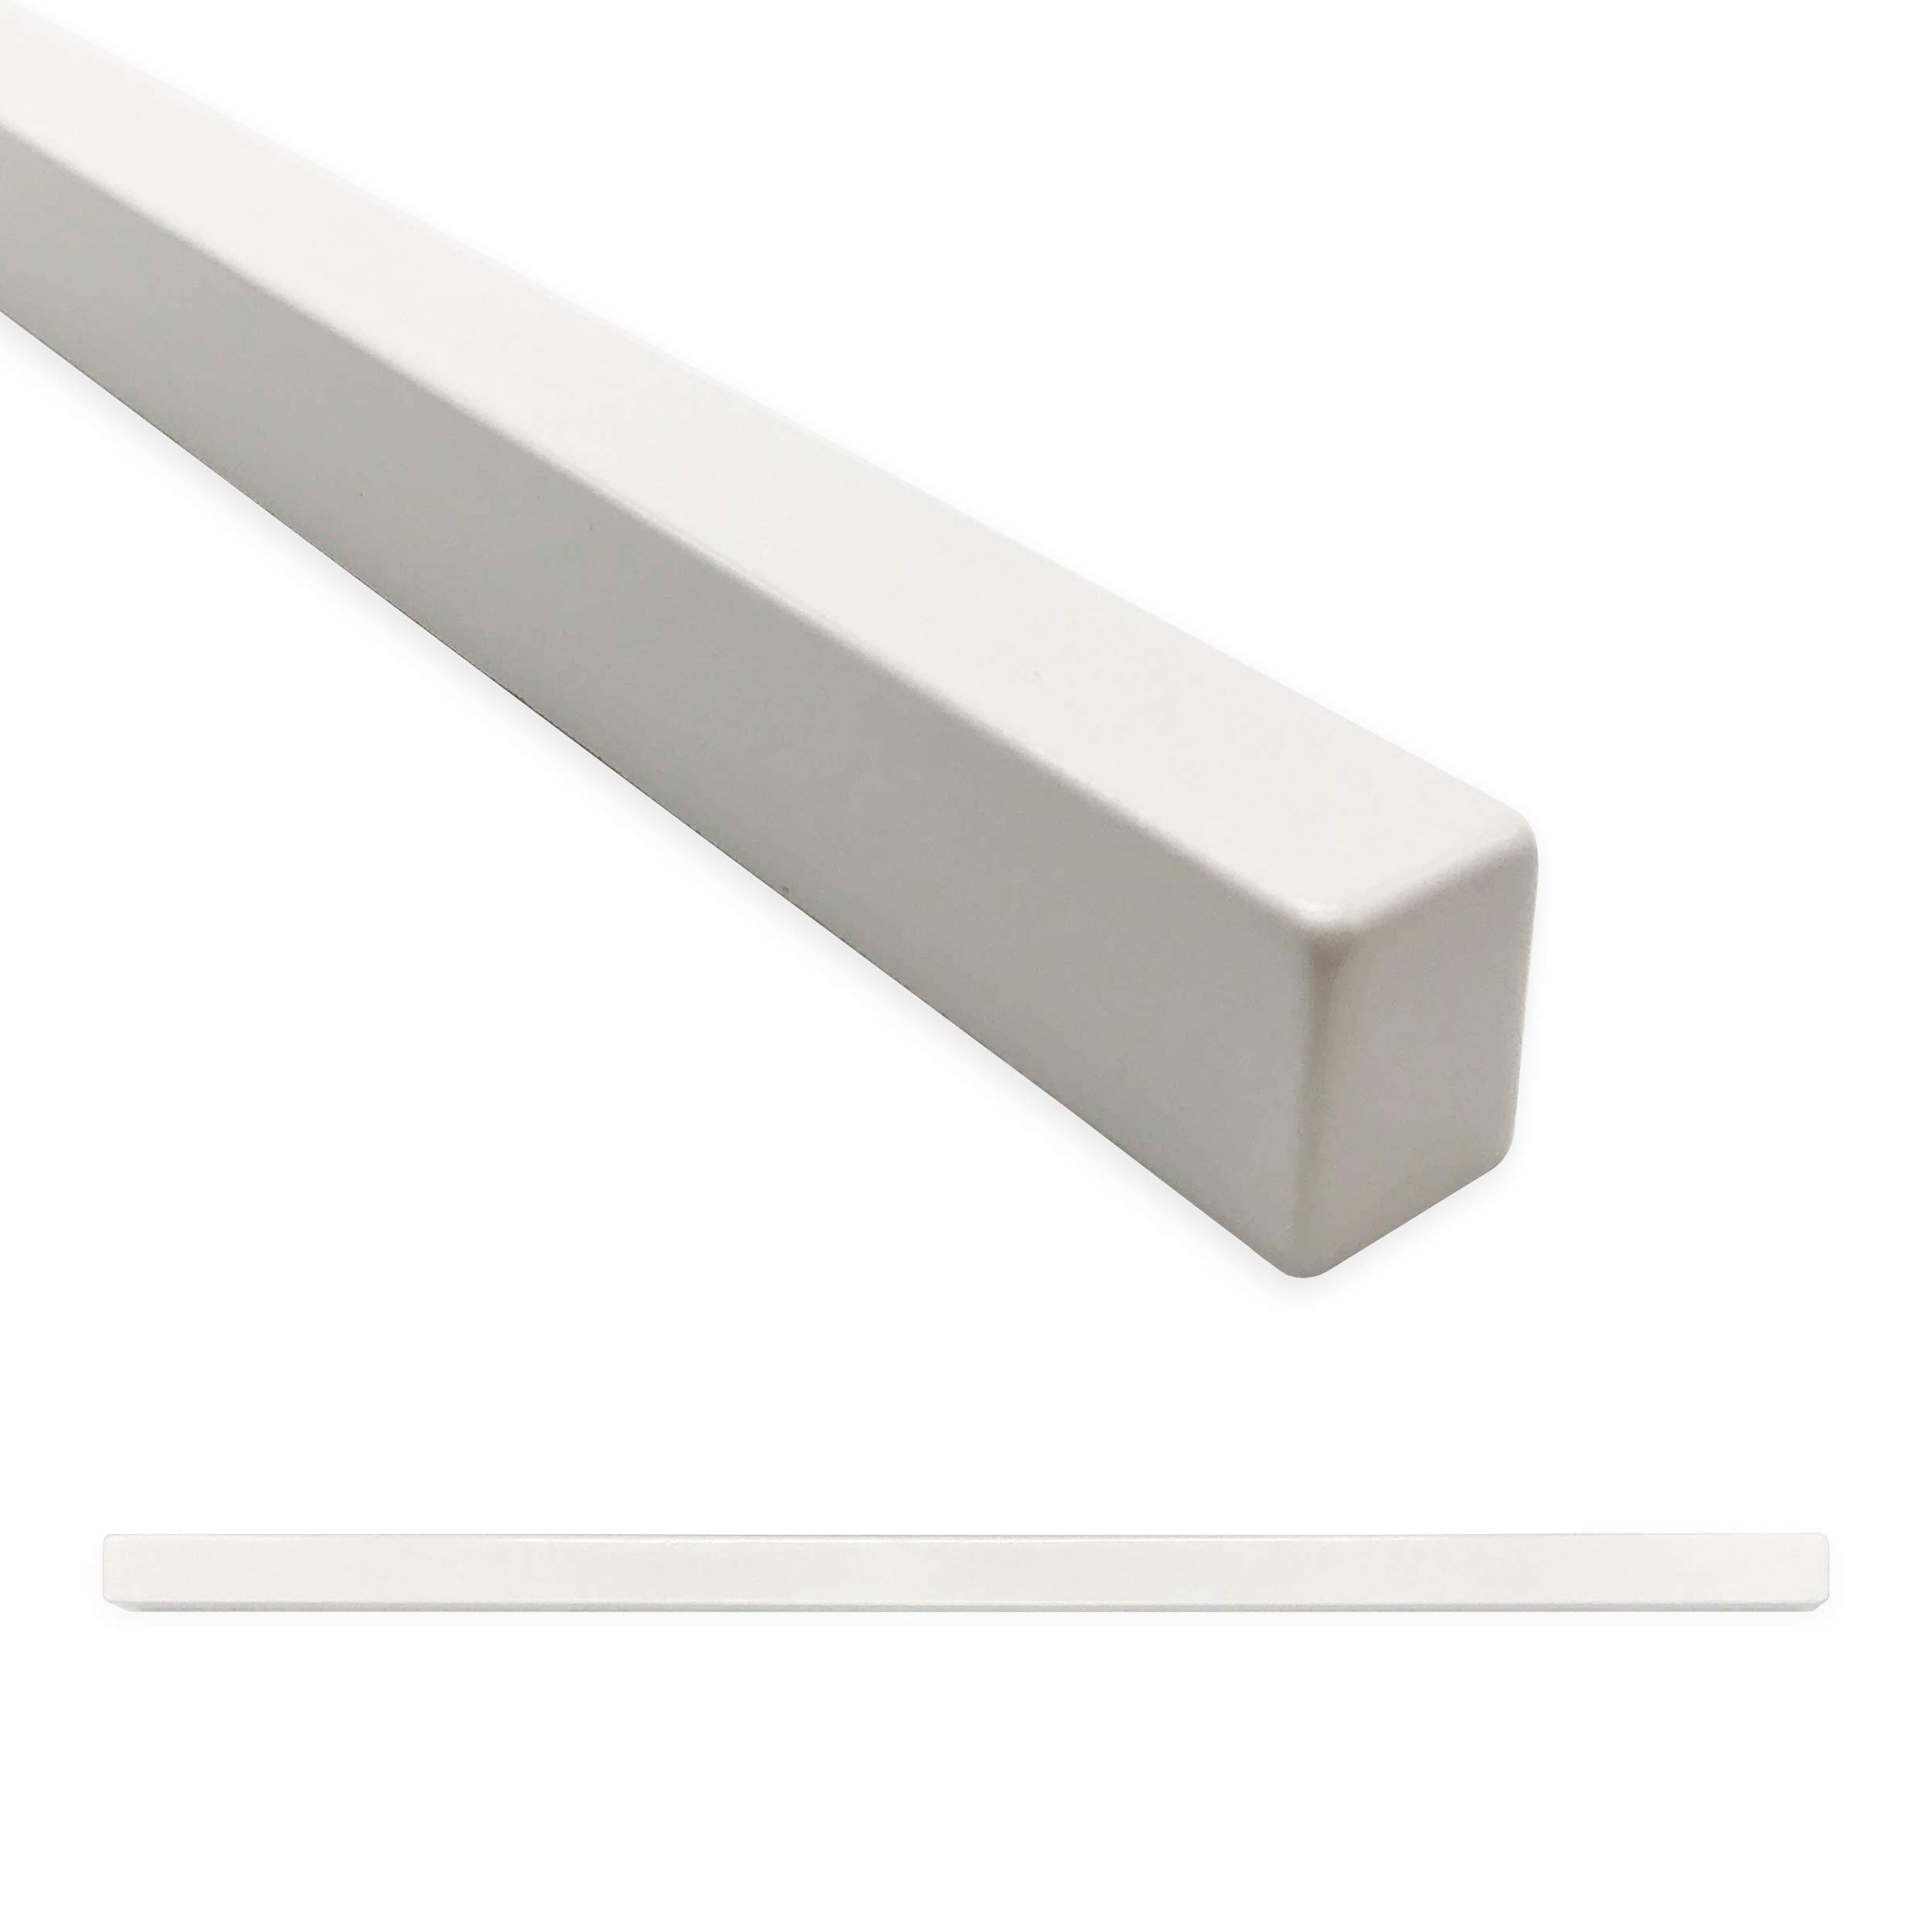 Bright White Linear Square 1/2 X 12 inch Pencil Liner Trim Pieces | Molding Tile for Kitchen Bathroom Ceramic Tile Finishing (12 Pack, Matte Bright White) by Questech